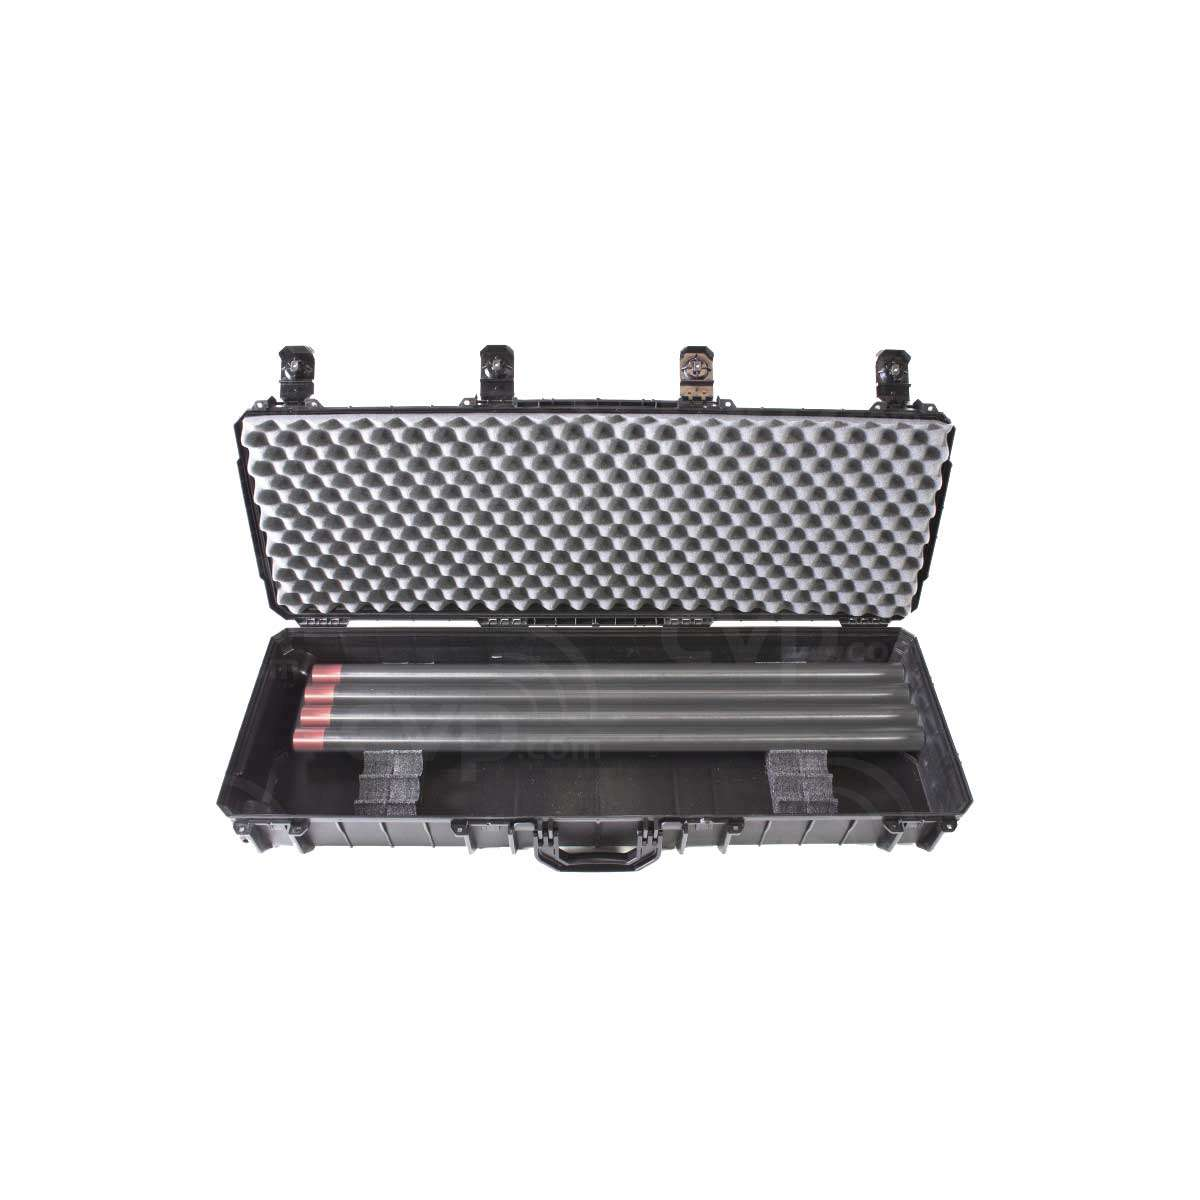 Kessler Kwik Rail Hard Case